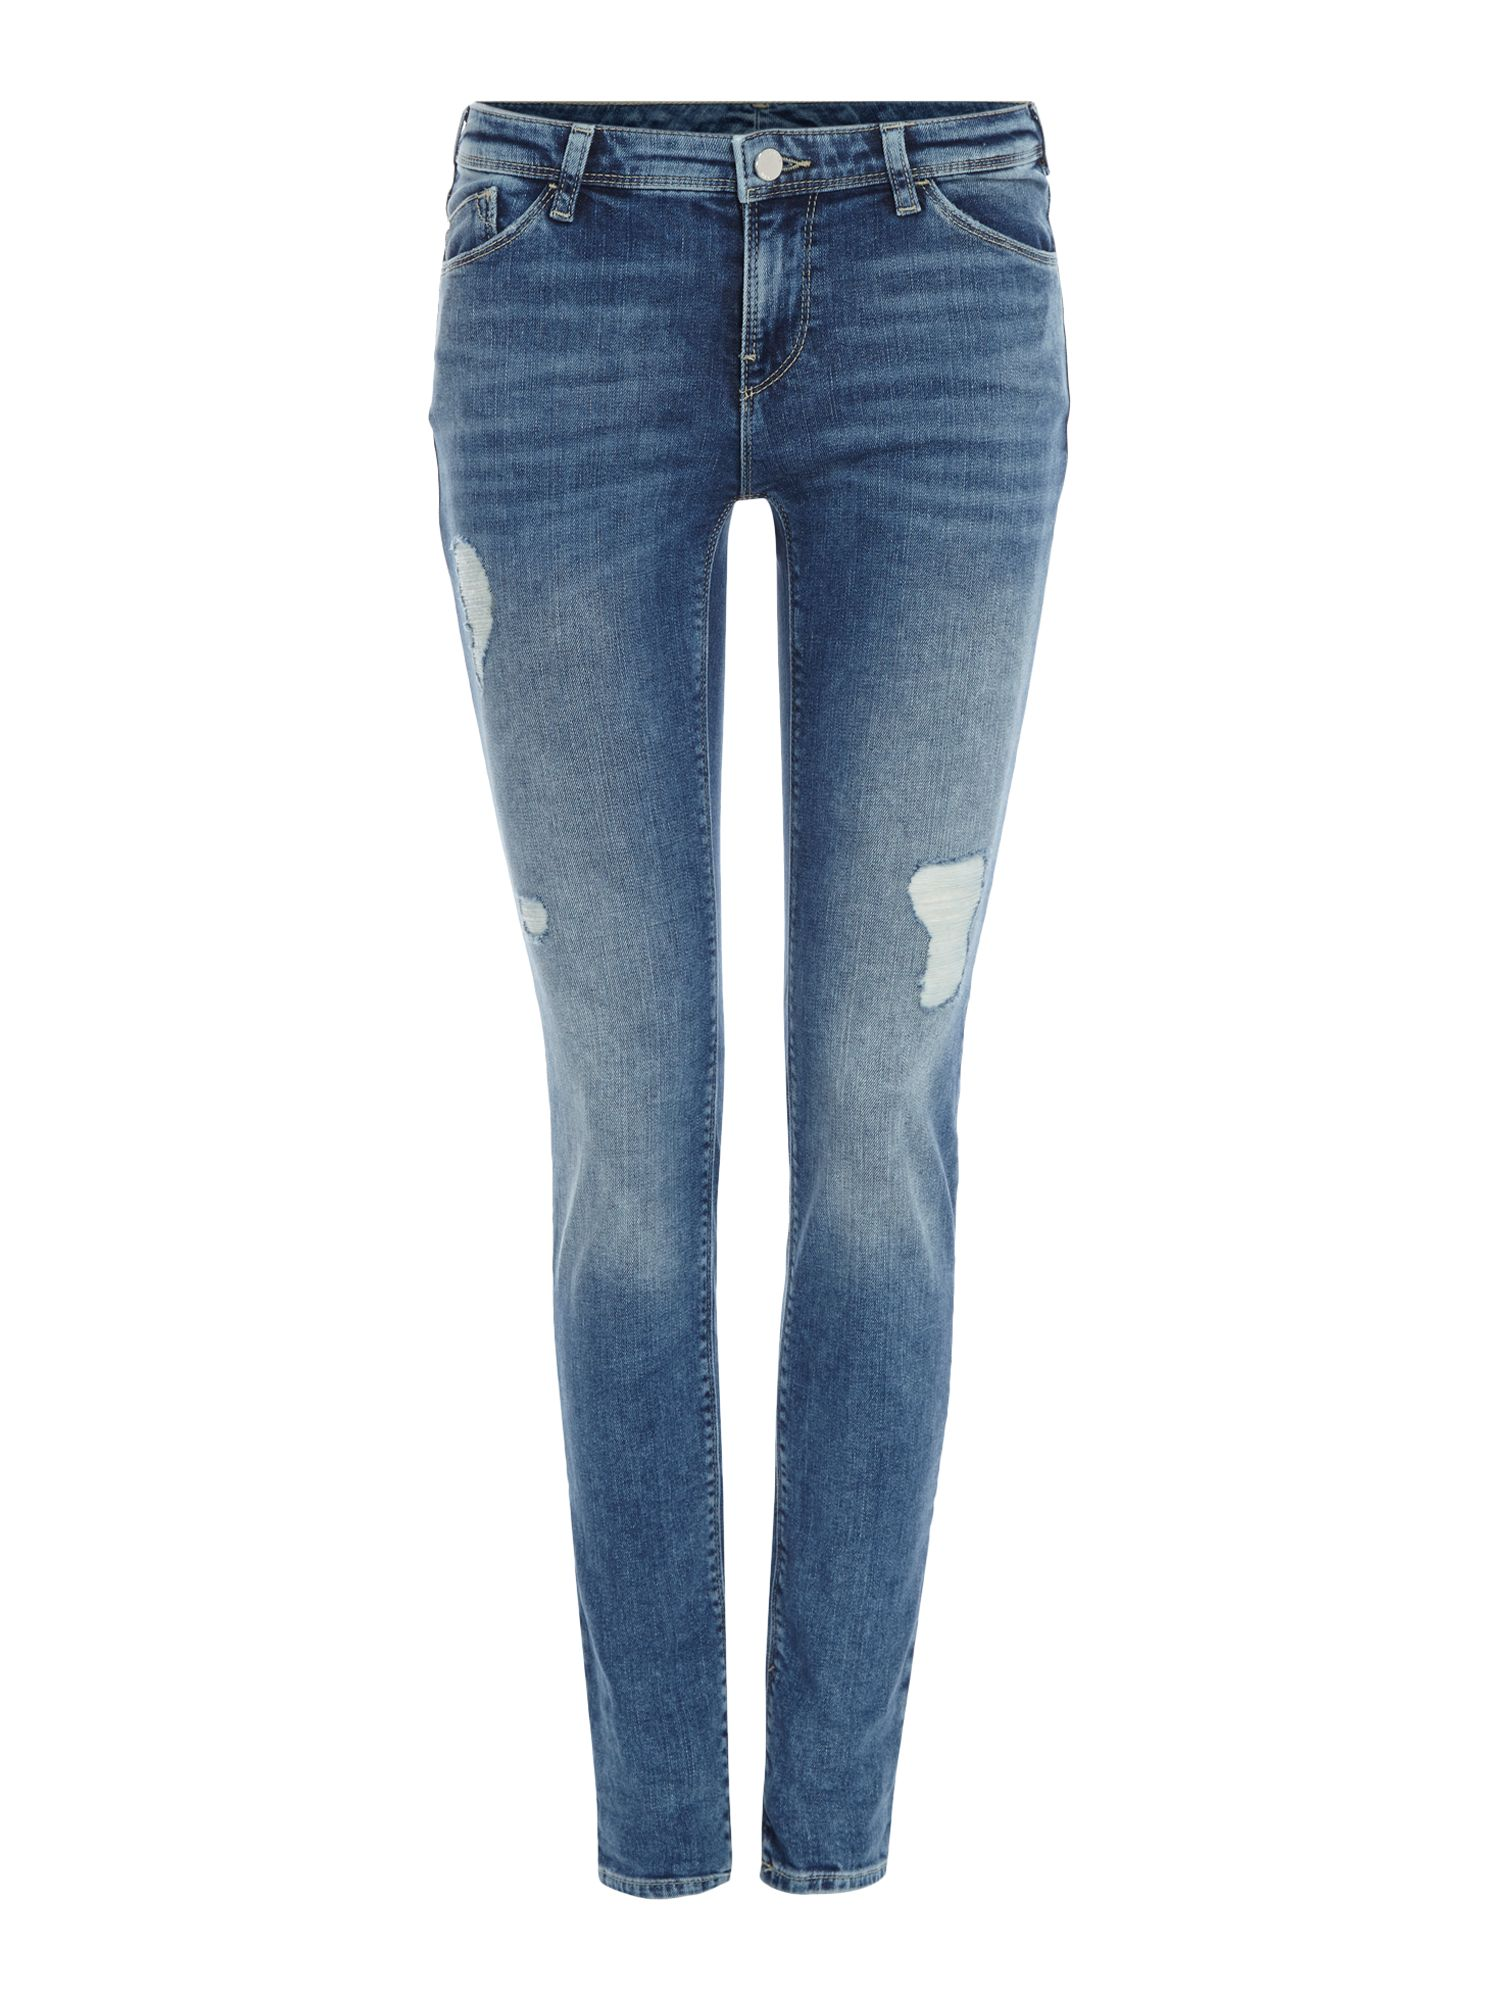 J28 Worn Thighs Distressed In Blu Denim, Denim Light Wash